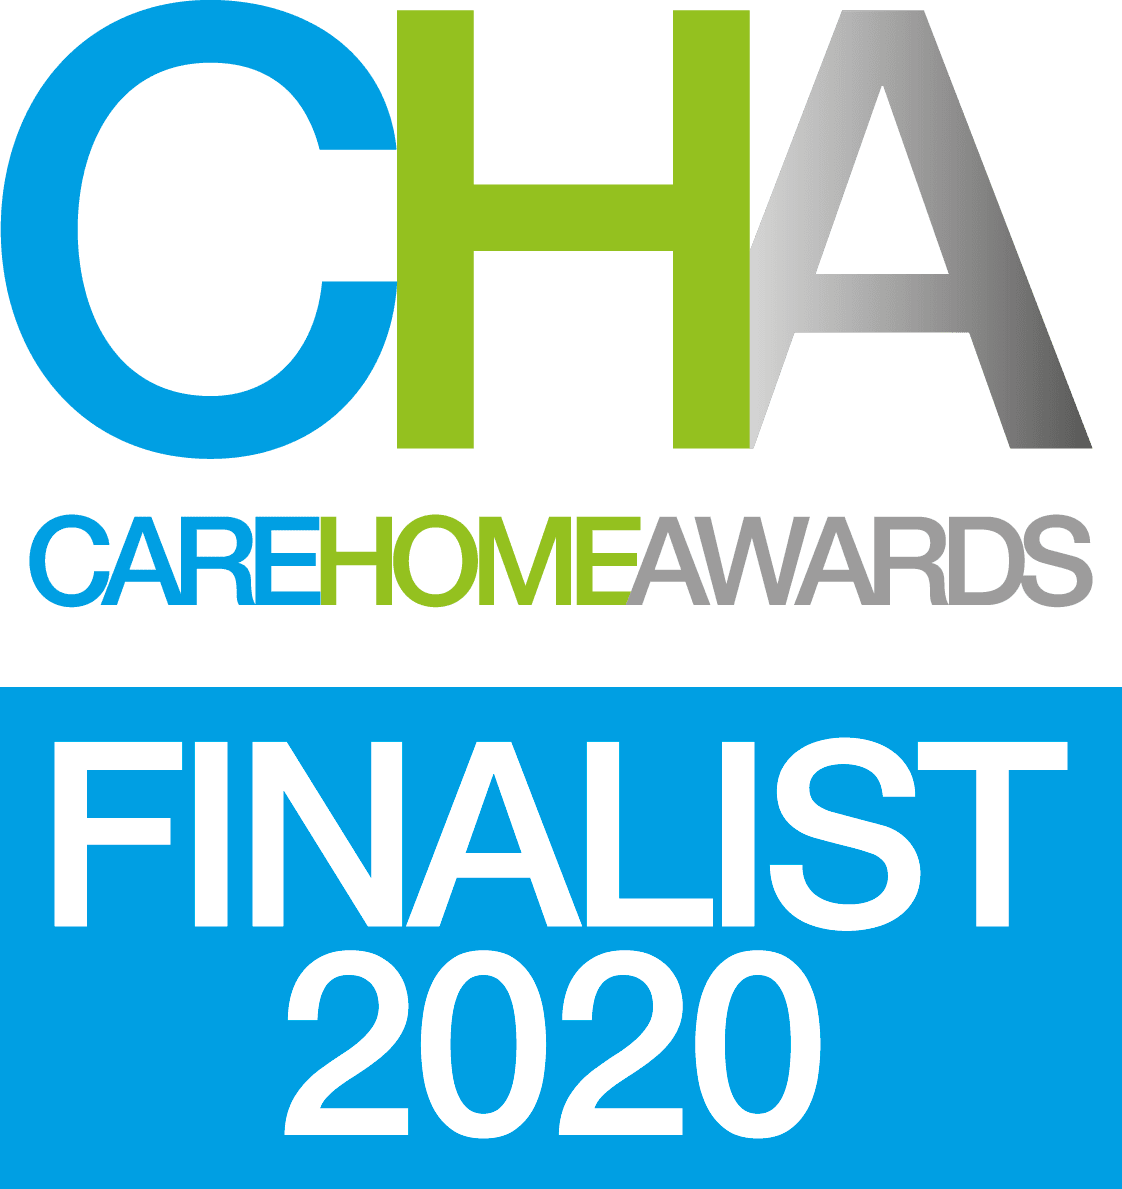 Care Home Awards 2020 - Finalist